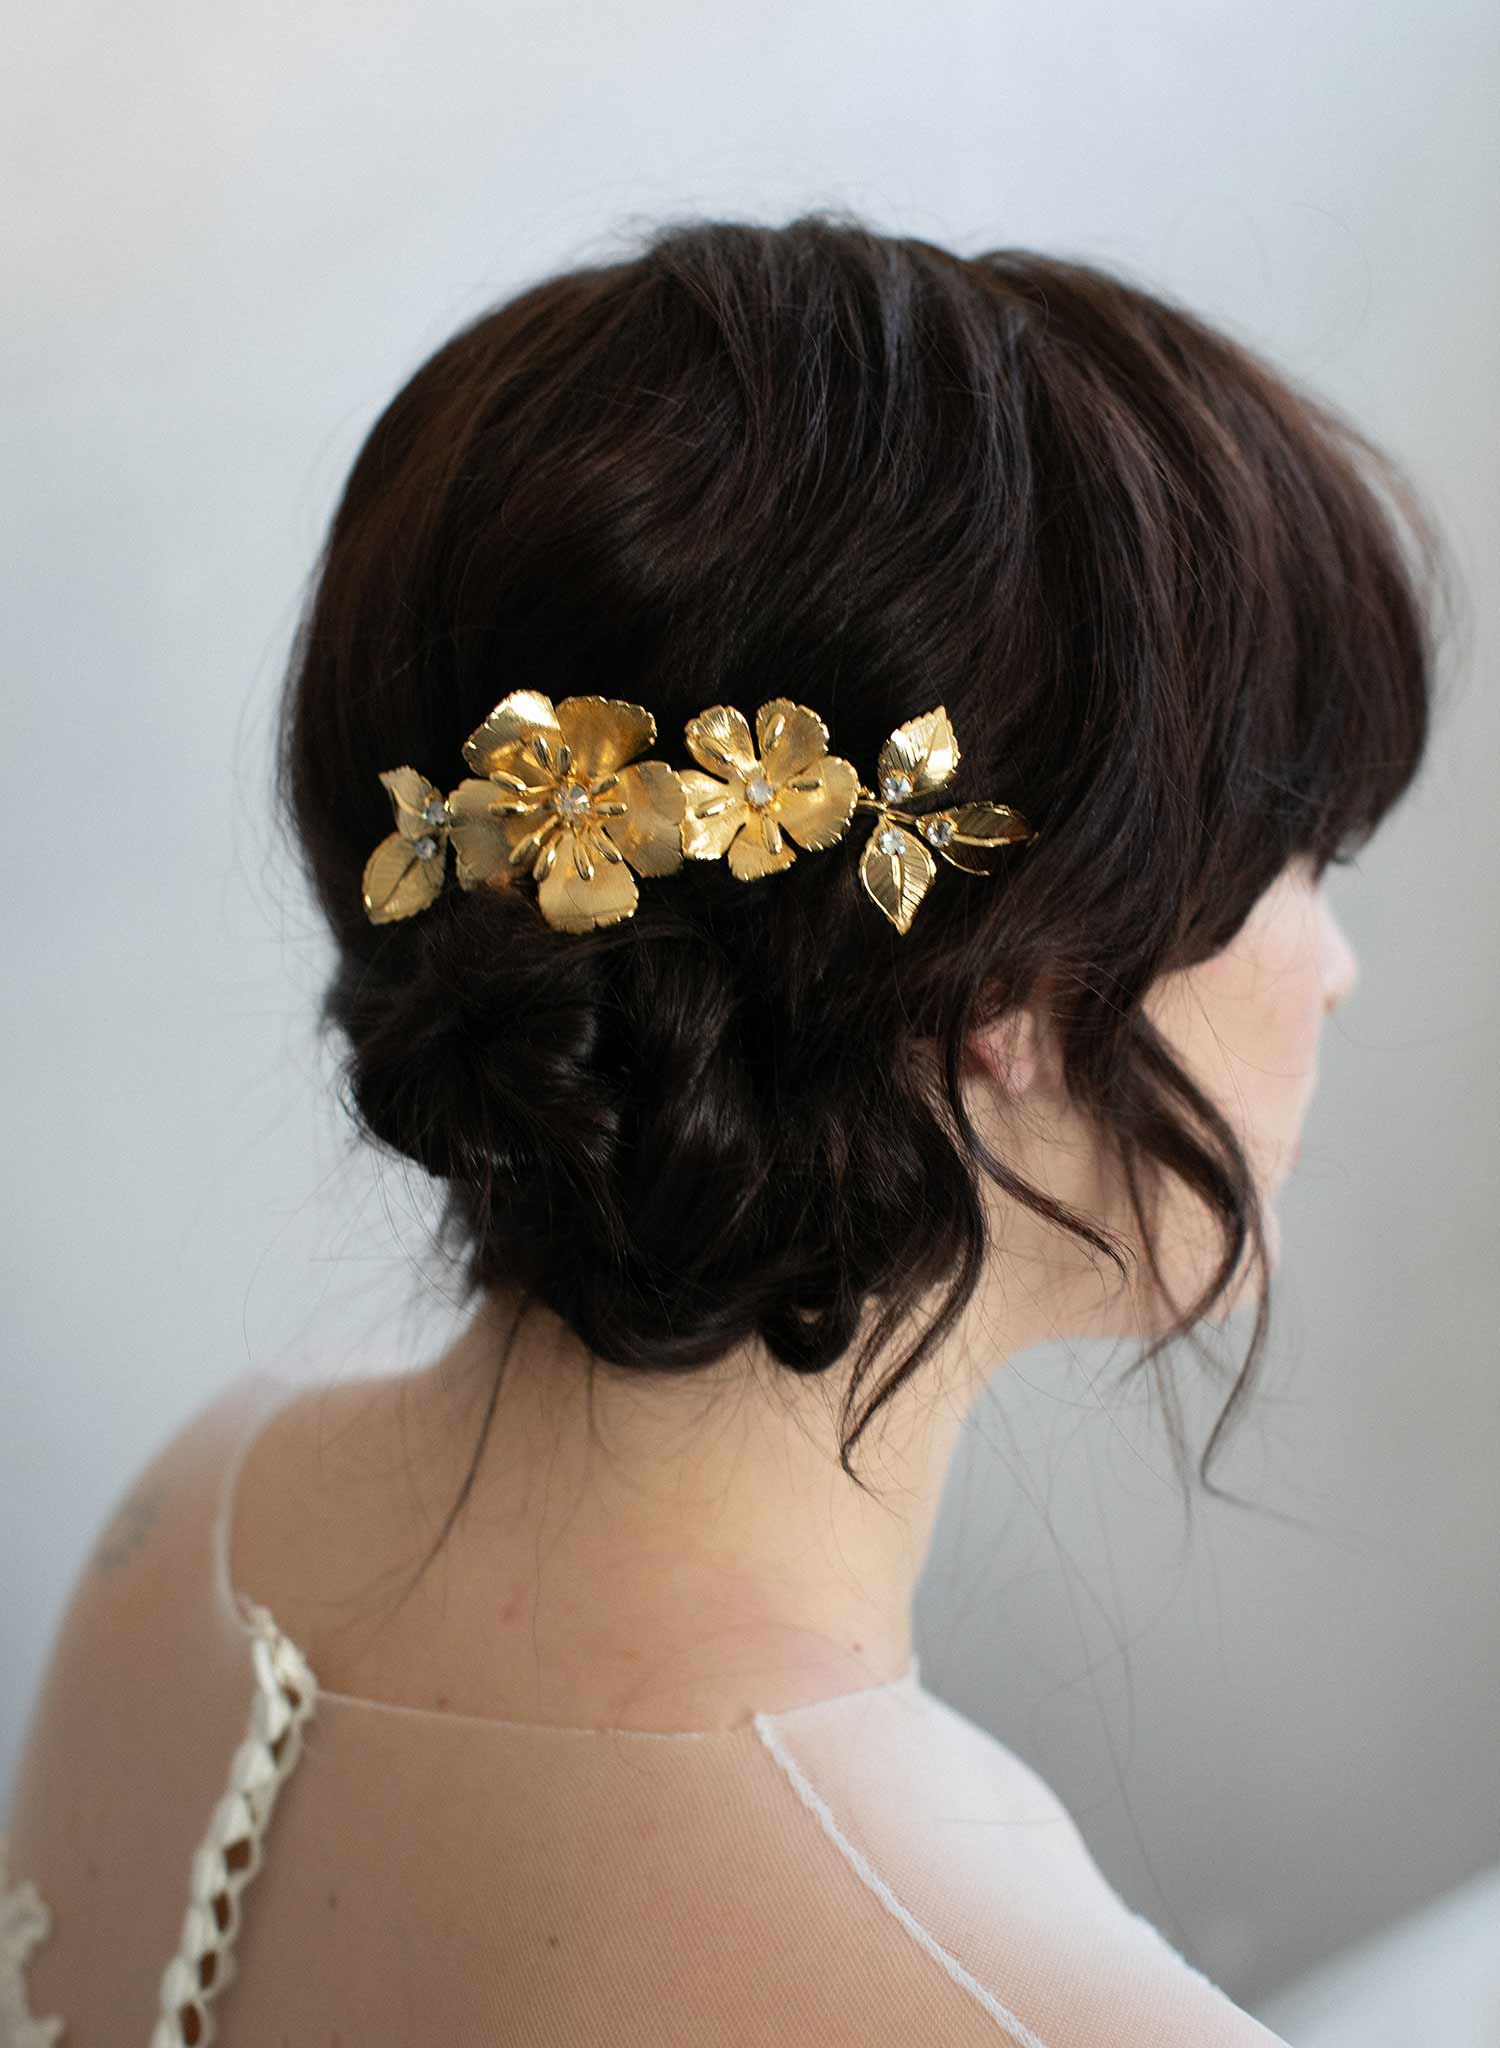 Gilded double flower hair comb - Style #923